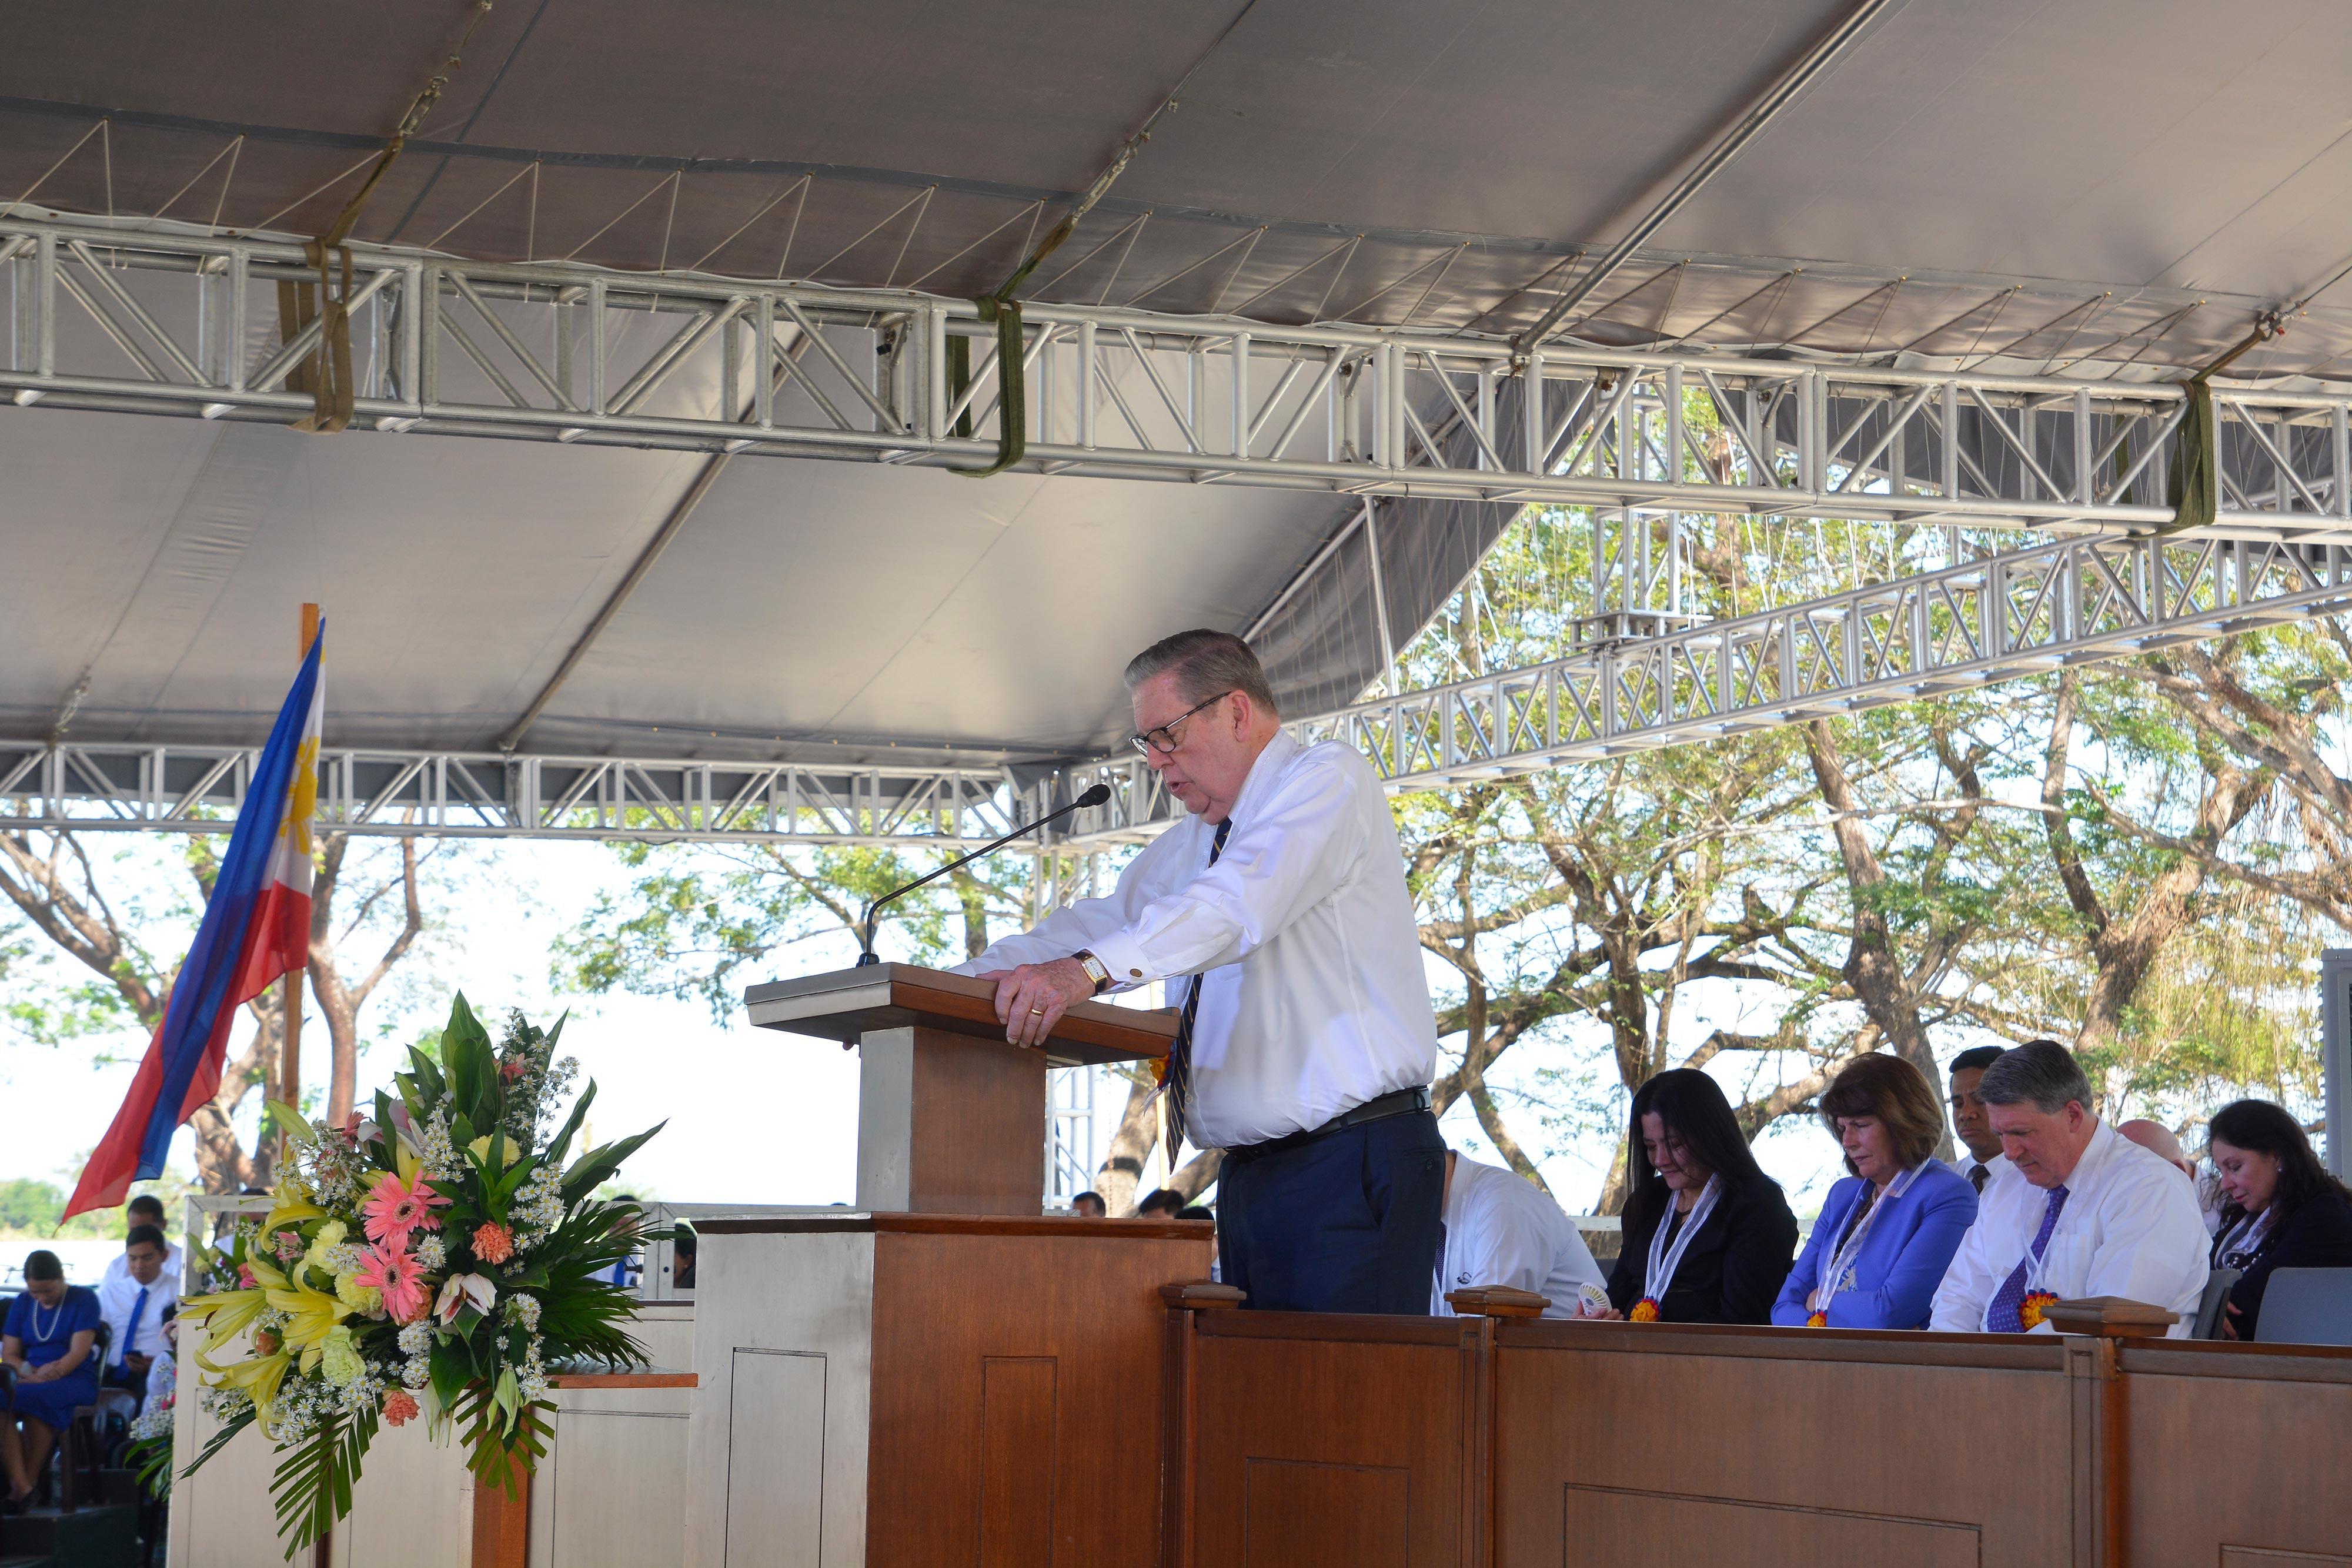 Elder Jeffrey R. Holland of the Quorum of the Twelve Apostles addresses community leaders and Church membersa in Urdaneta, Pangasinan, Philippines, on Wednesday Jan. 16, 2019. He broke ground for the new temple, the Church's third in the Philippines.